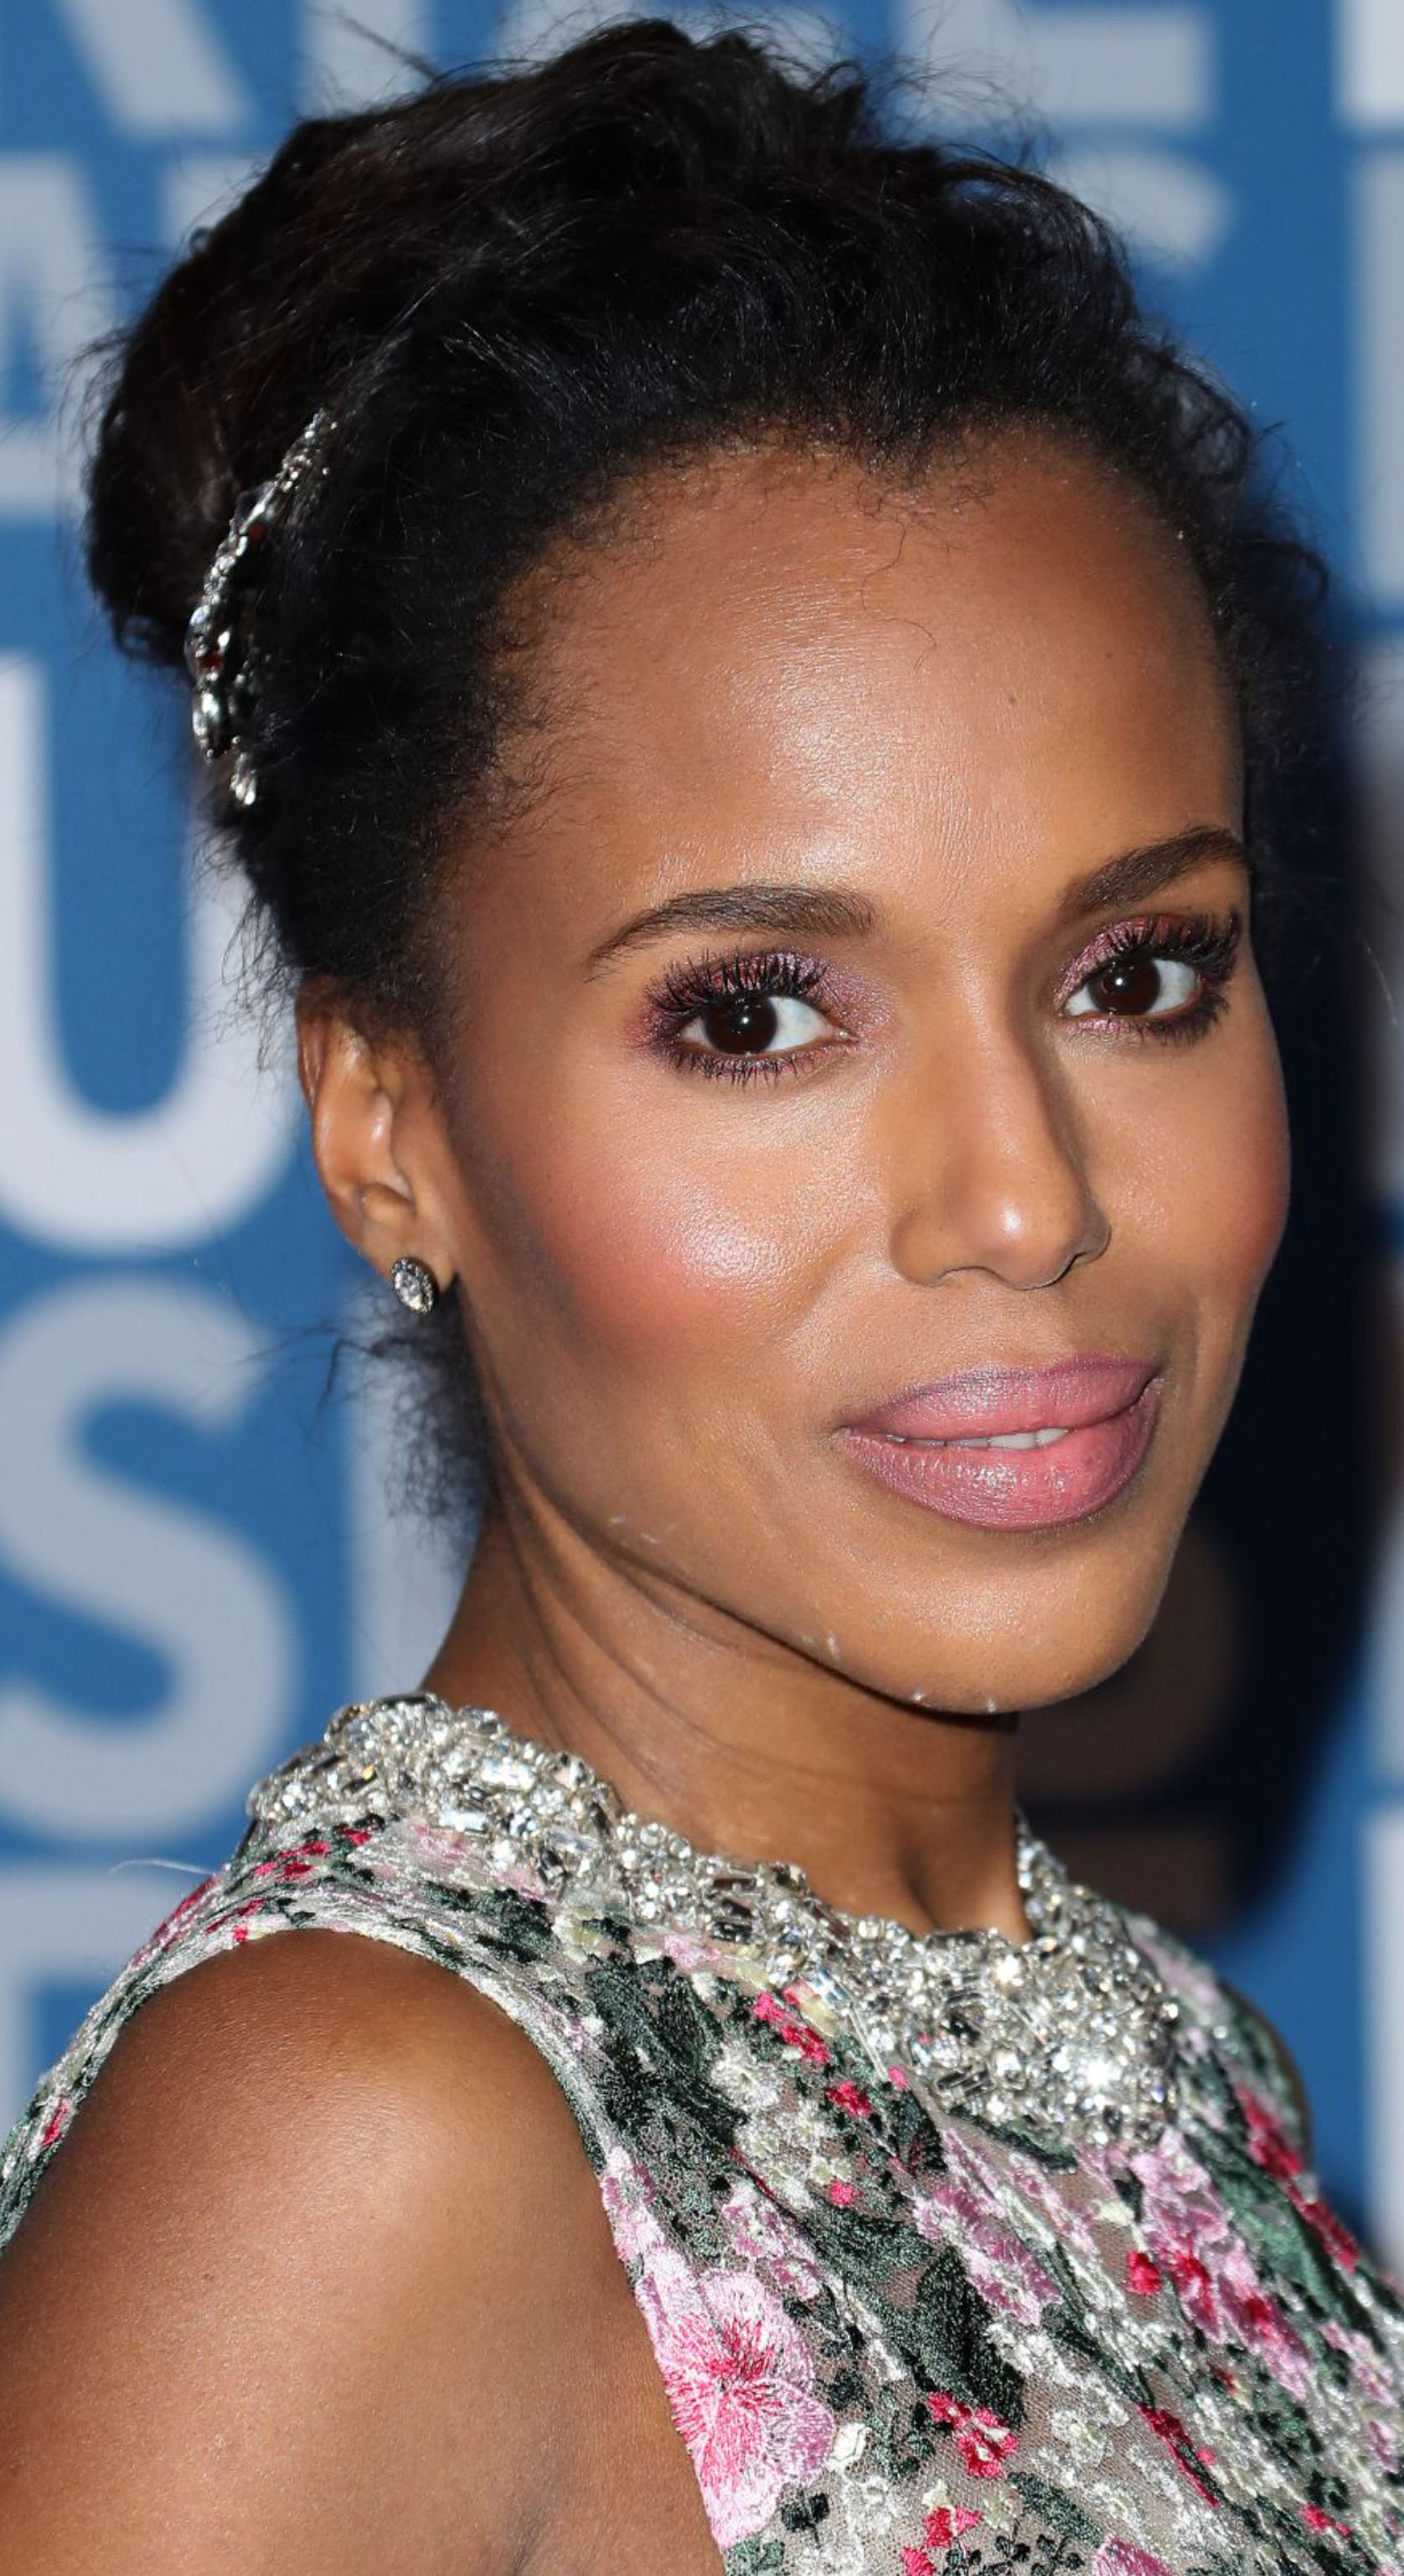 kerry washington 2.jpg